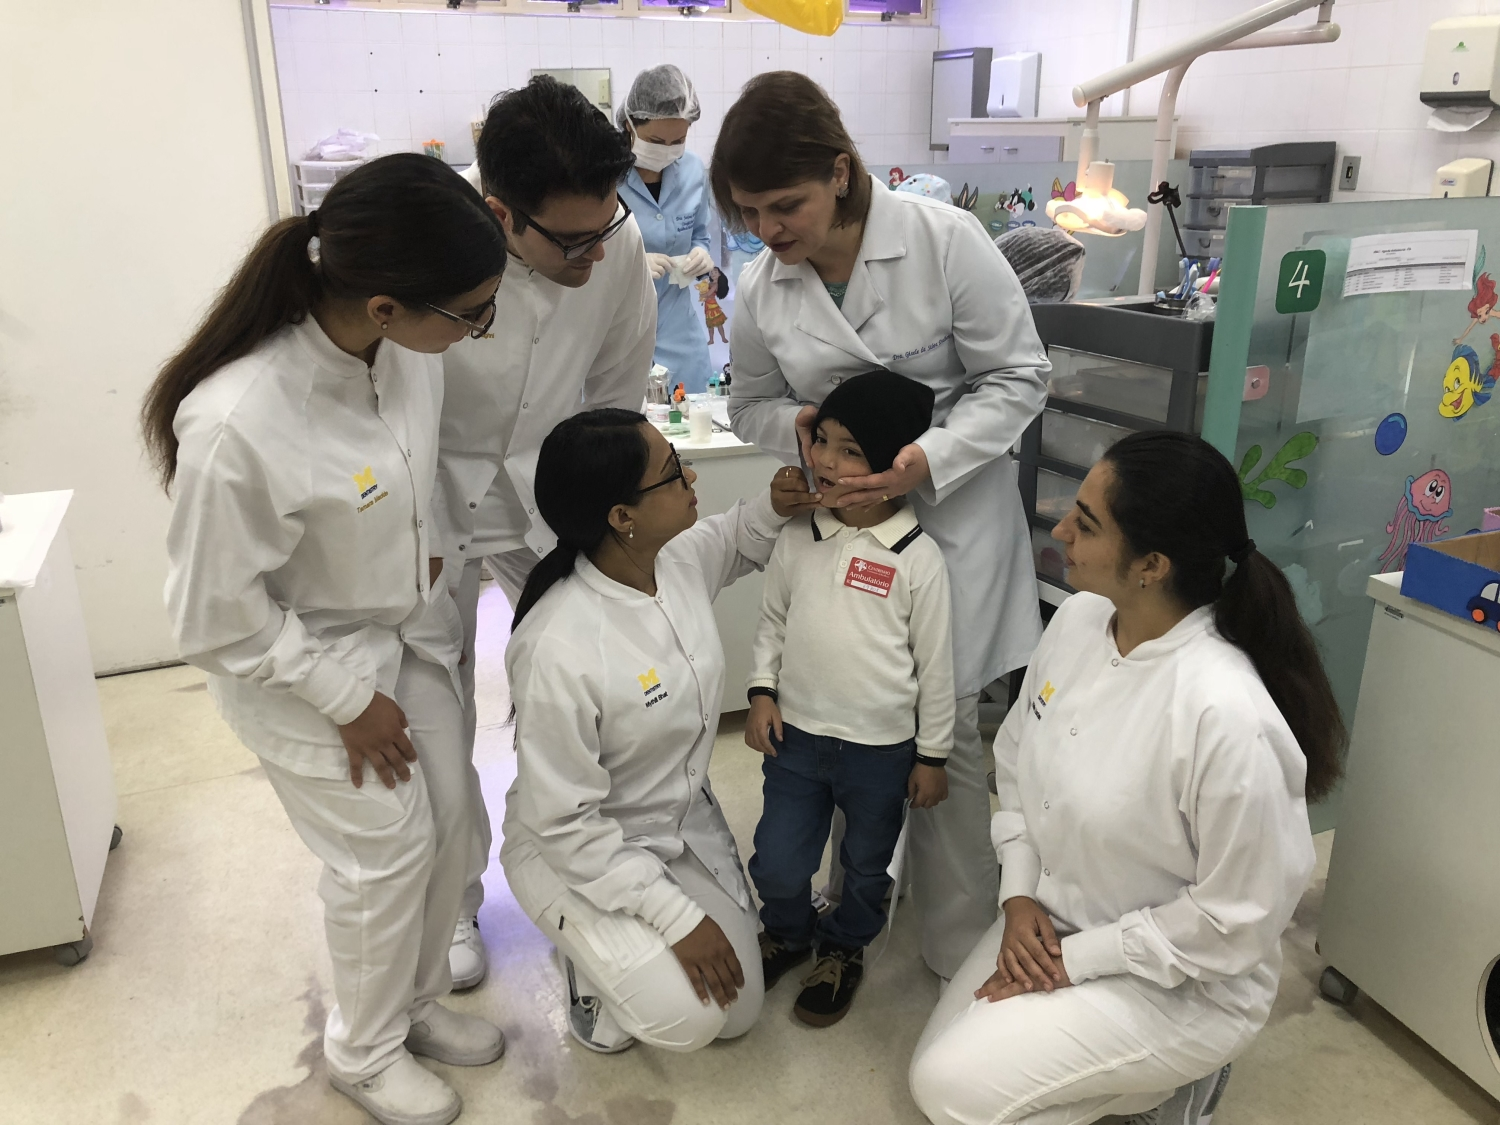 Improving oral health care: U-M dental students learn about